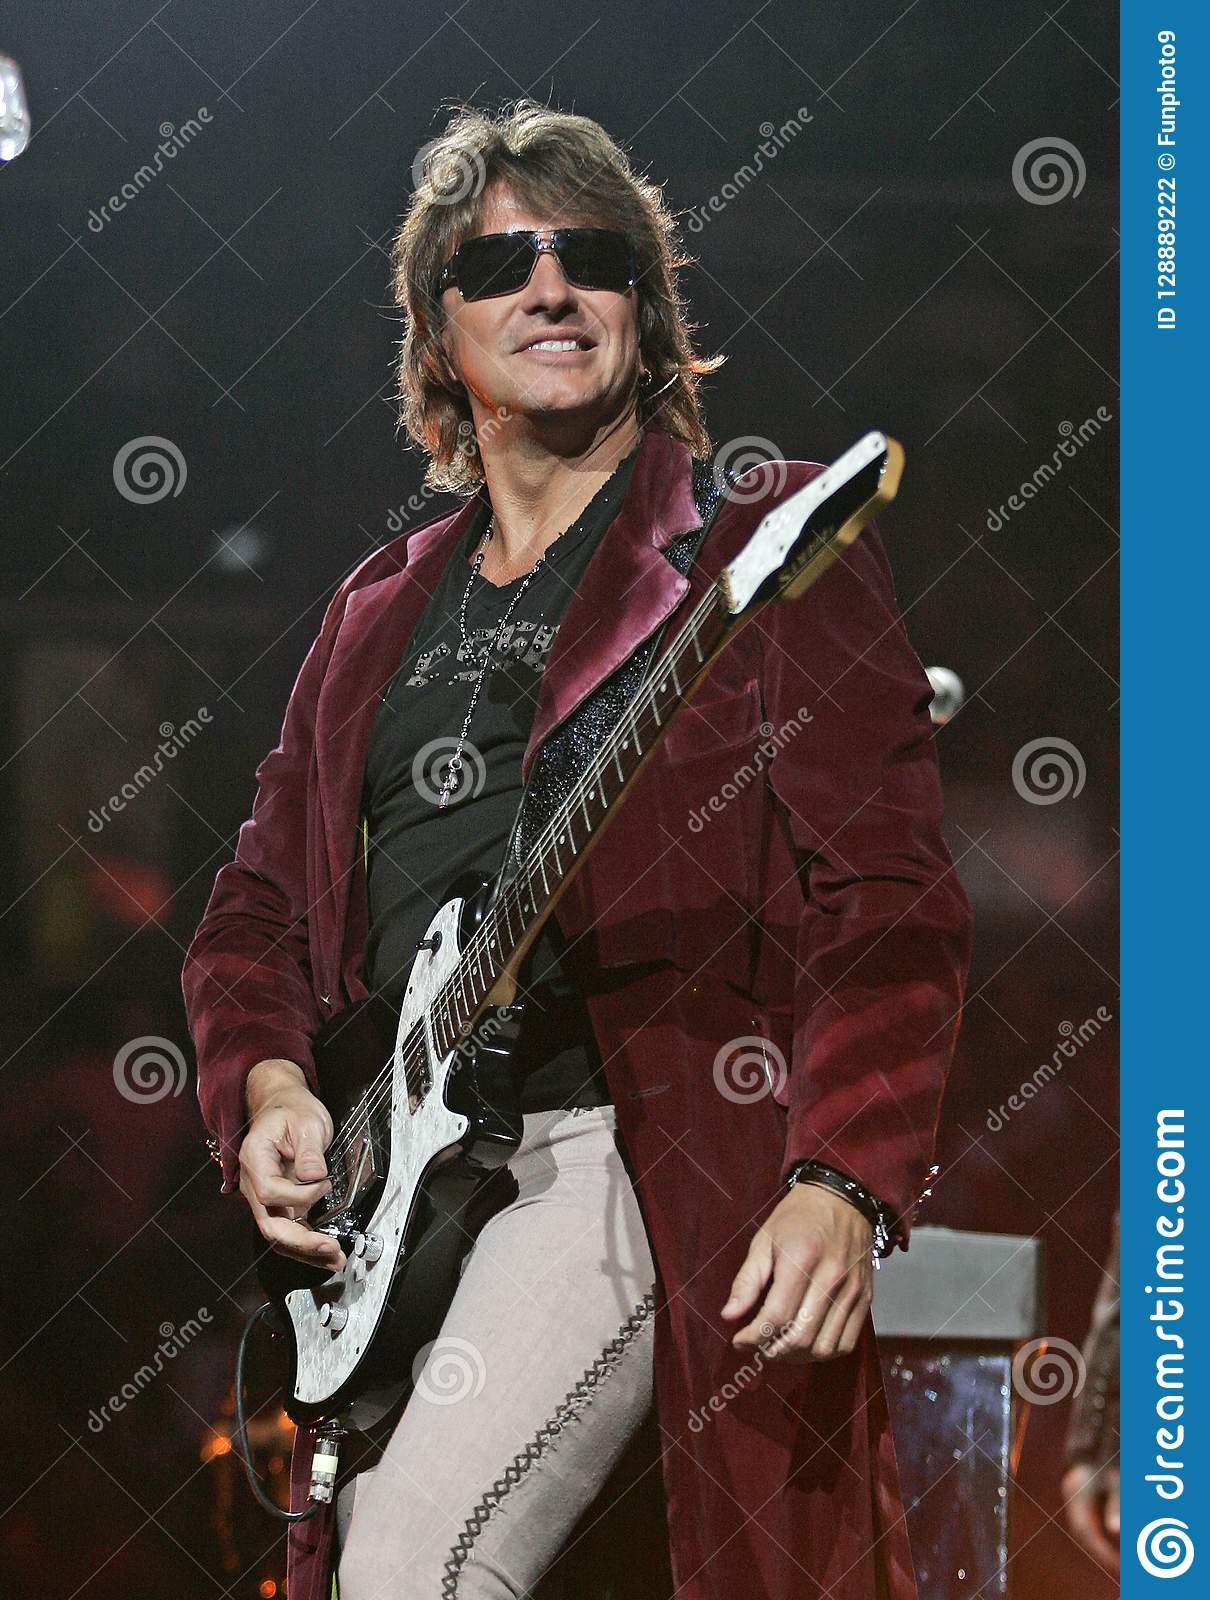 Richie Sambora - Bon Jovi performs in concert